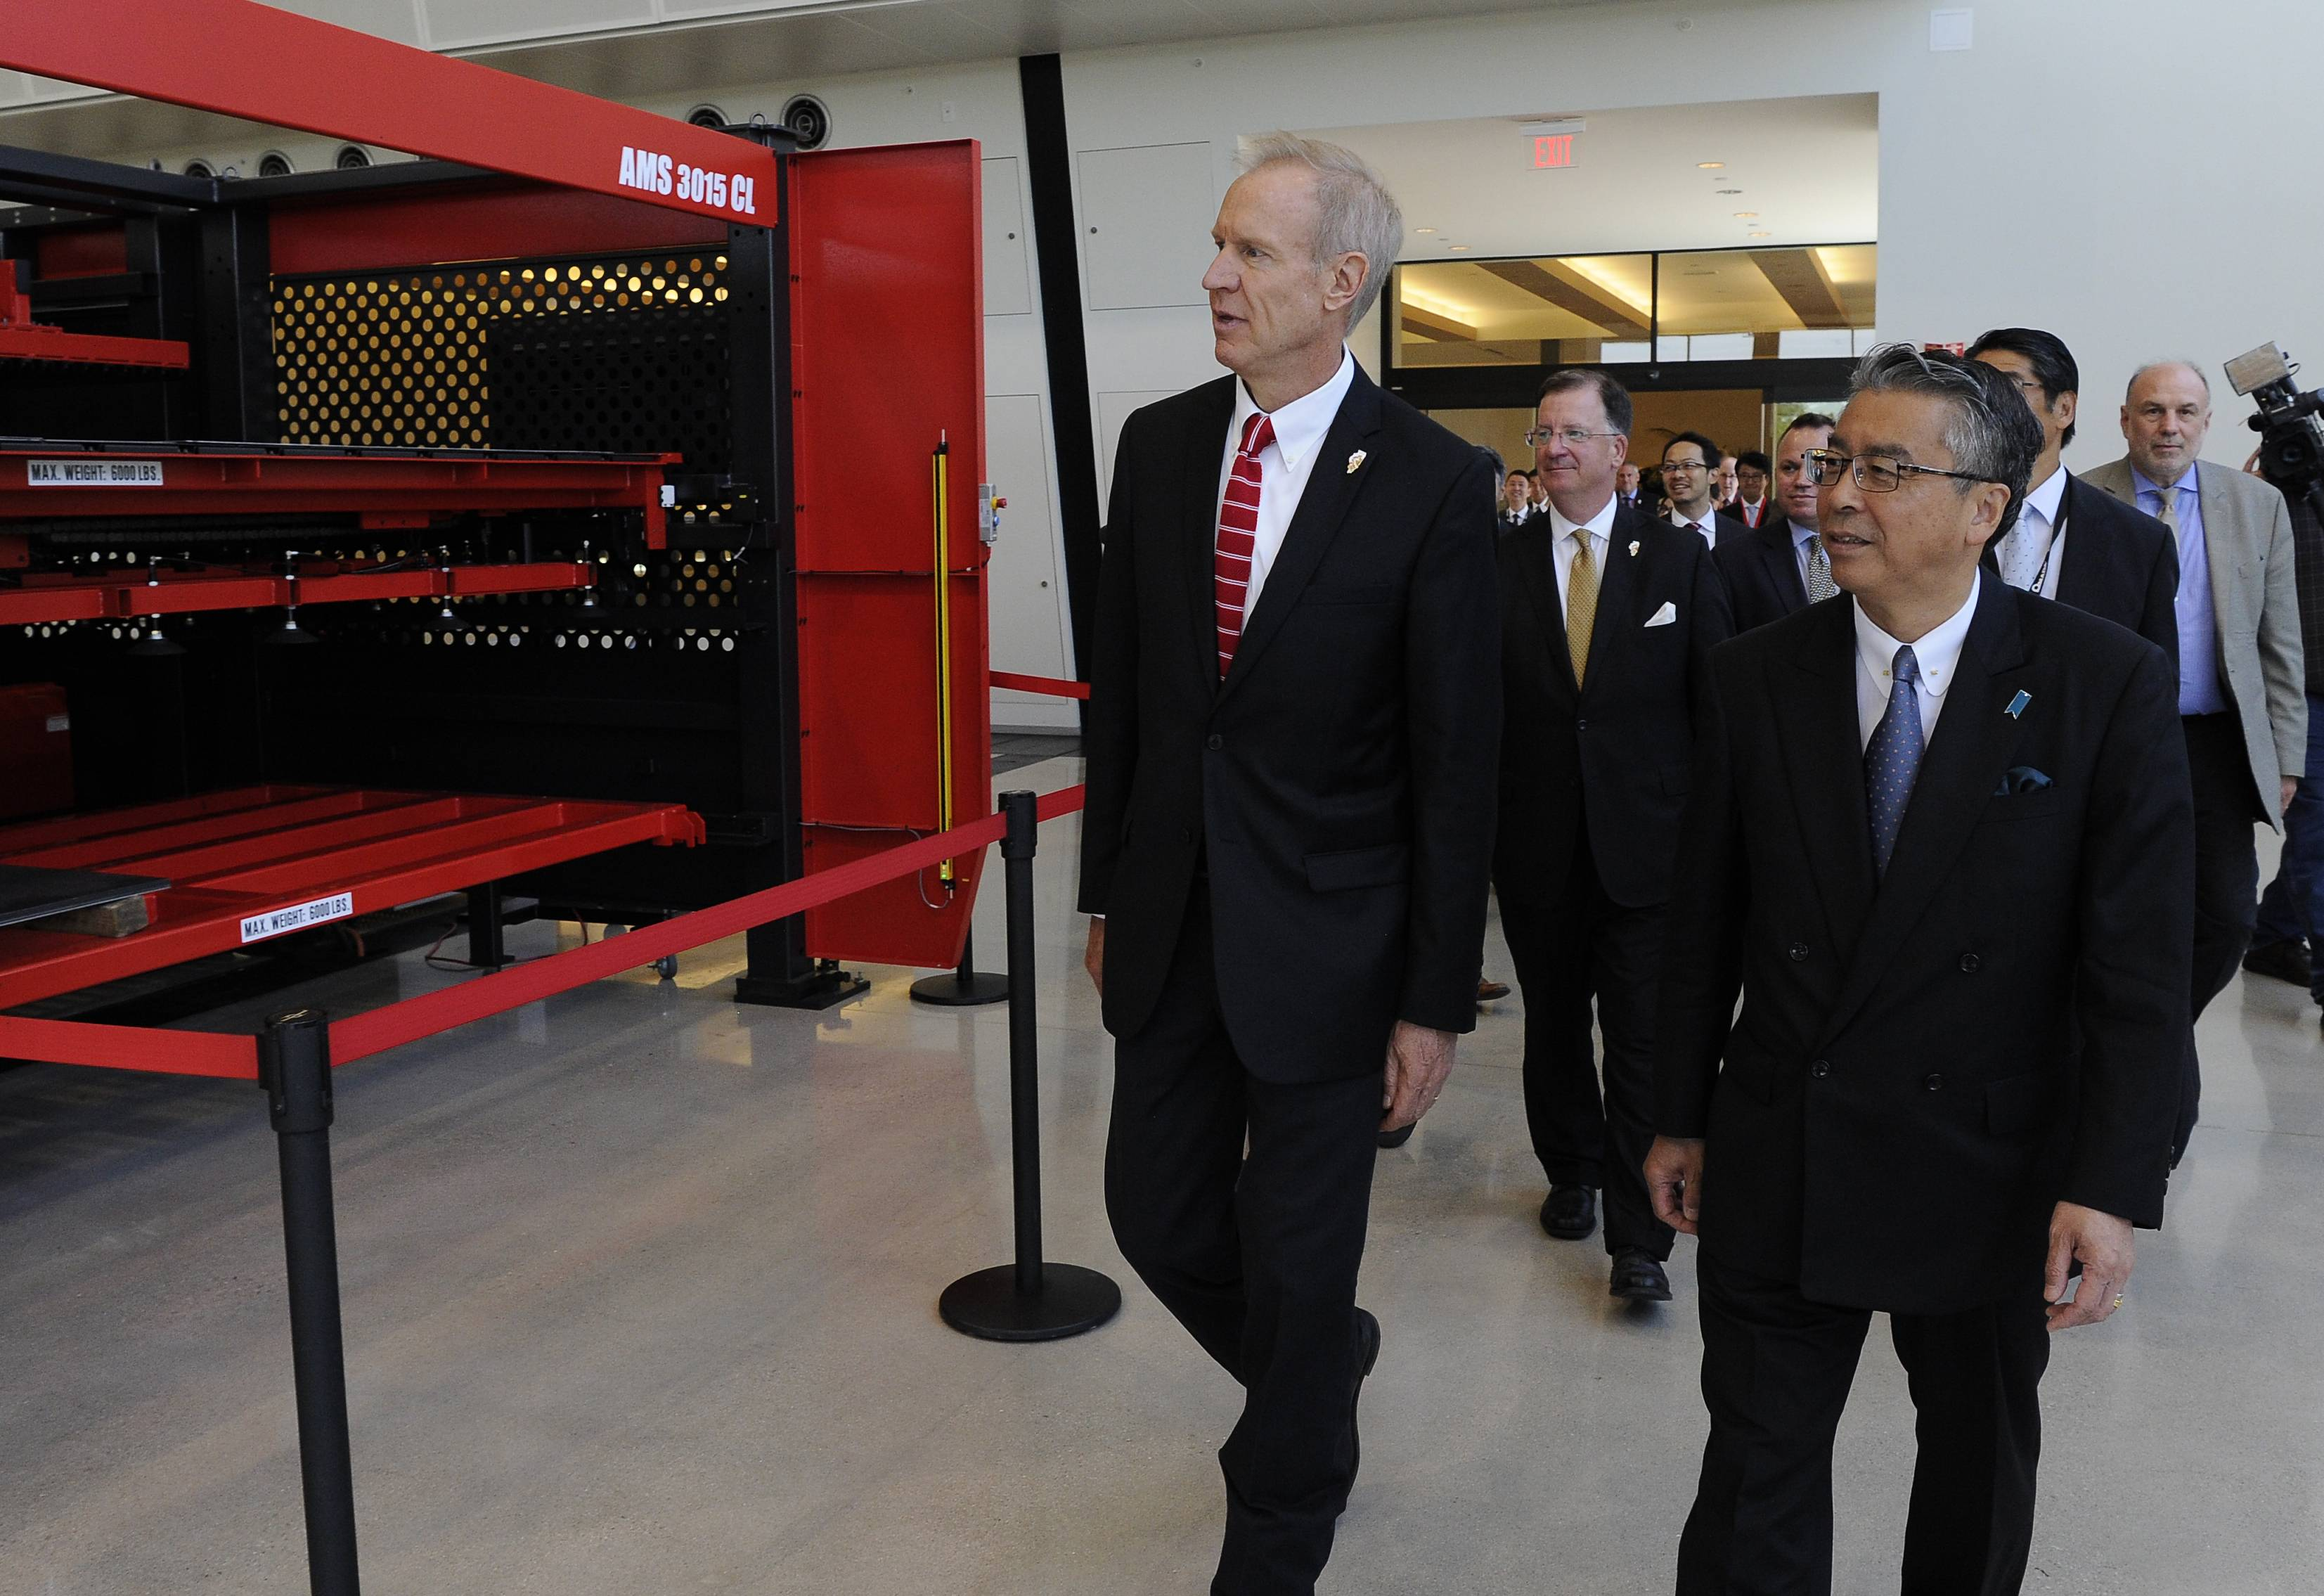 Gov. Bruce Rauner walks into the Amada America, Inc. plant in Schaumburg with Japanese Ambassador Shinsuke Sugiyama and other dignitaries for a tour Tuesday.